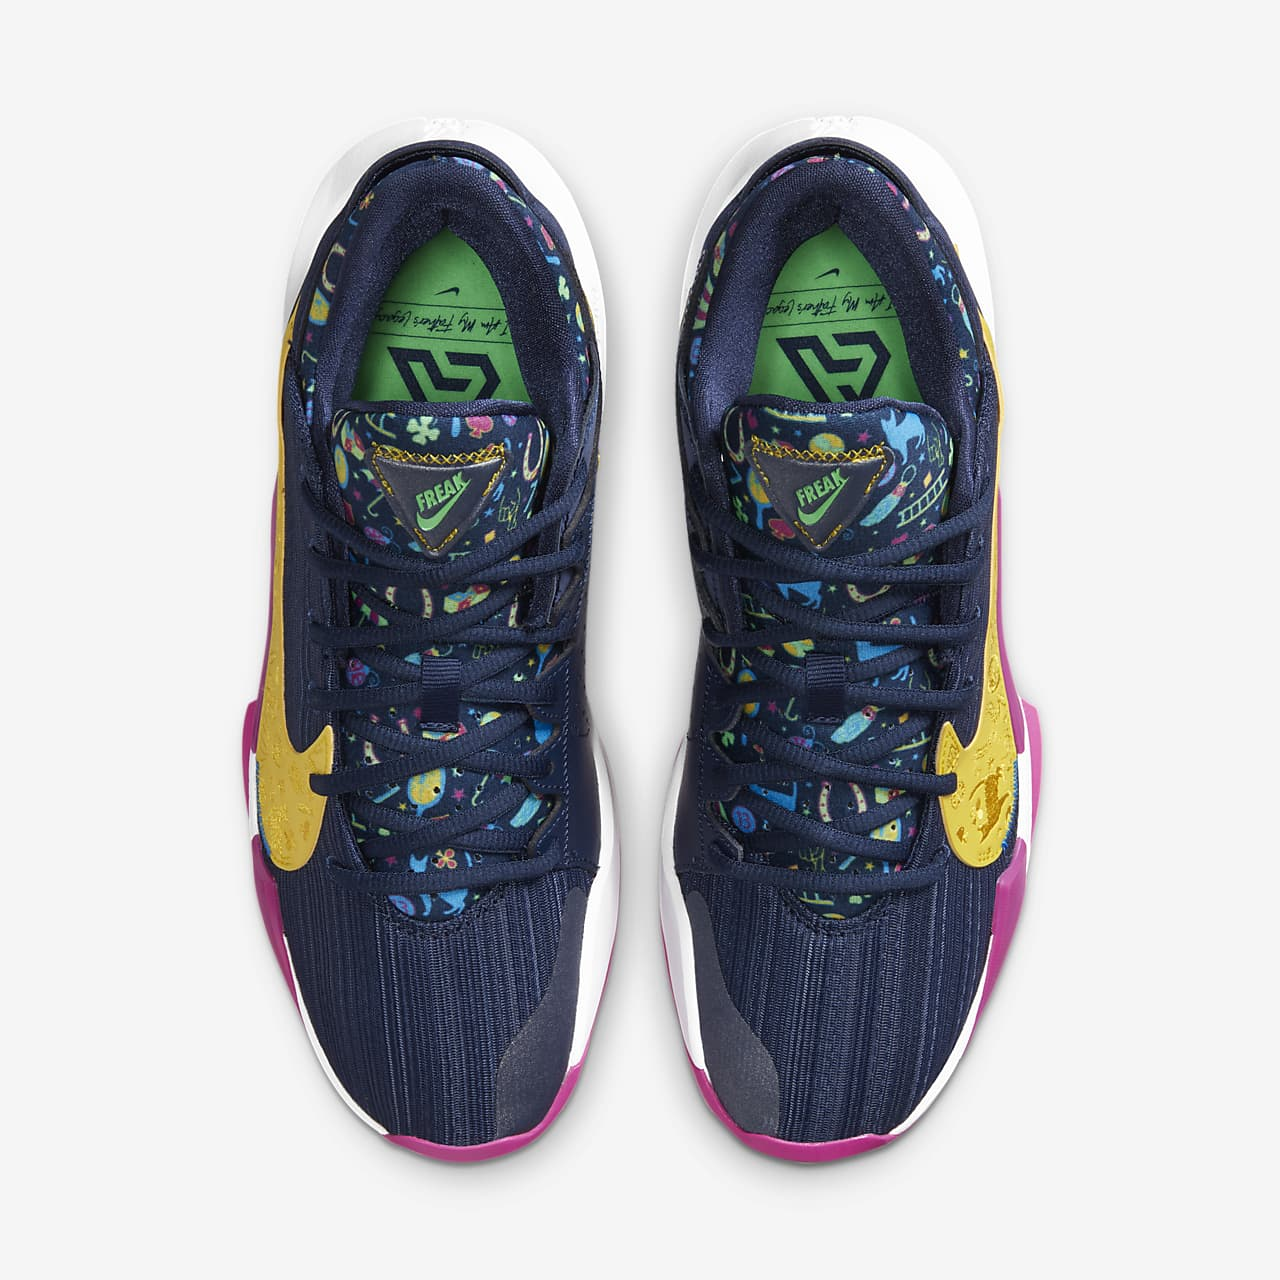 유럽직배송 나이키 NIKE Zoom Freak 2 Basketball Shoe DB4689-400